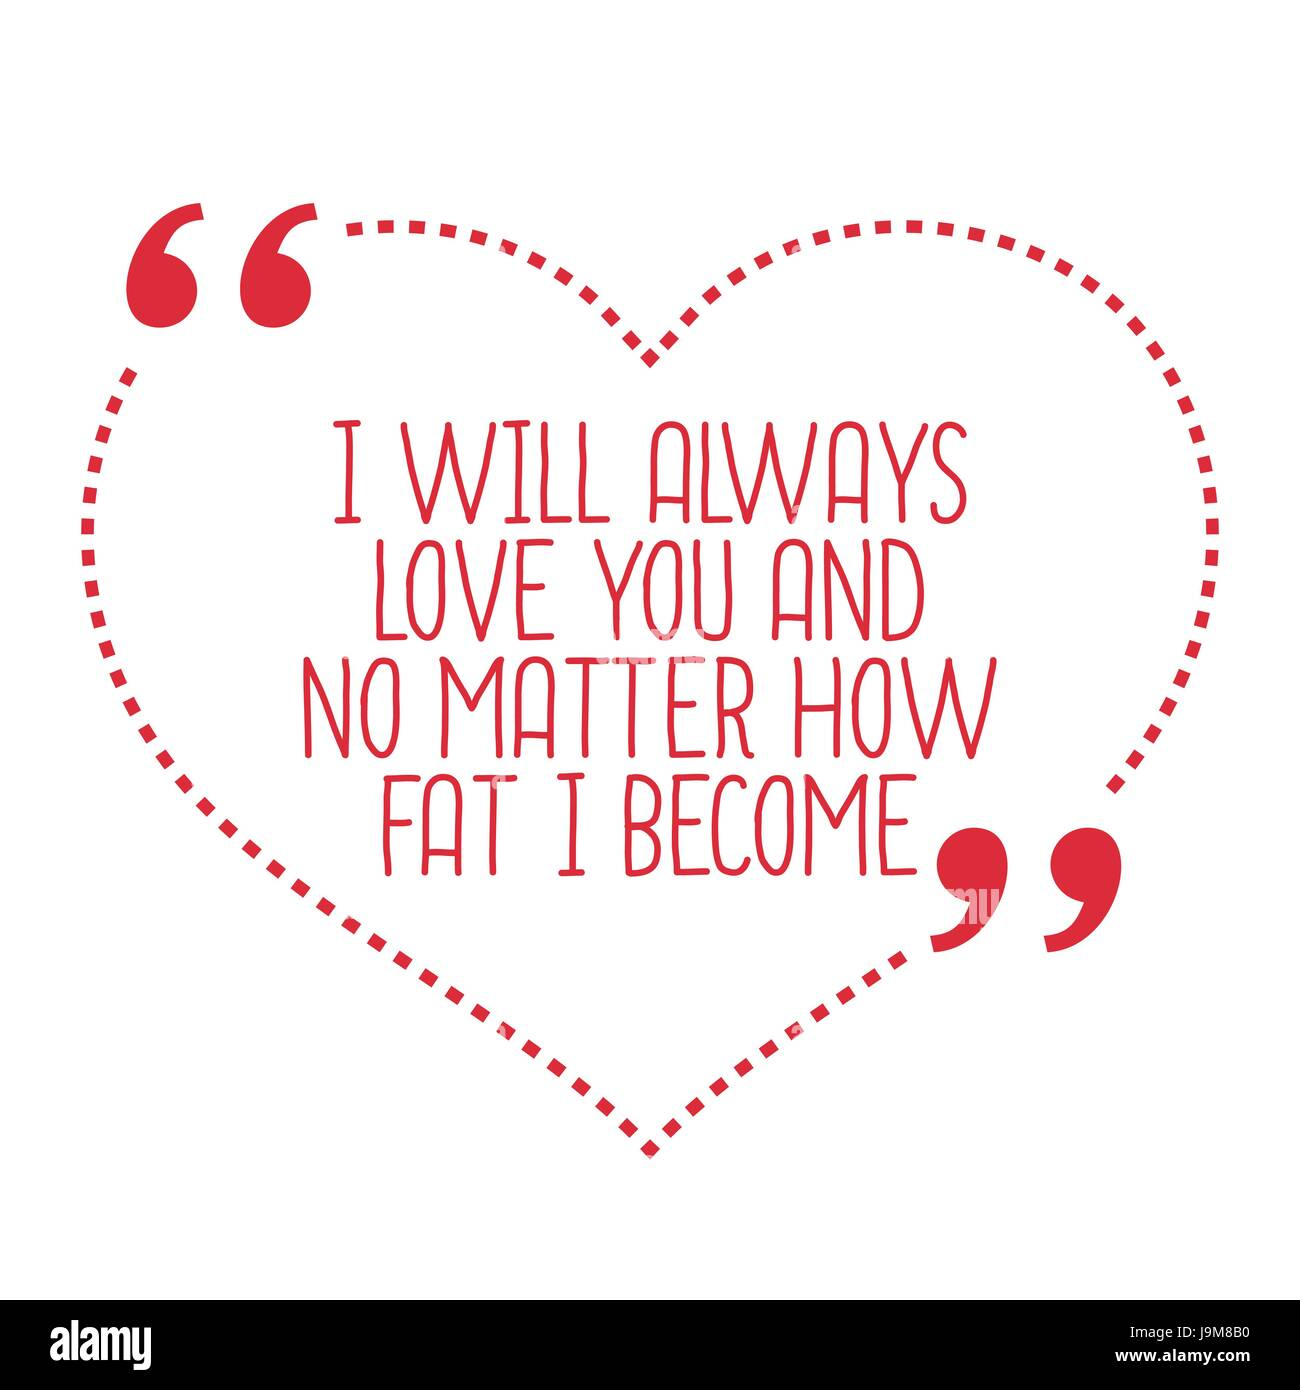 Simple I Love You Quotes Funny Love Quotei Will Always Love You And No Matter How Fat I